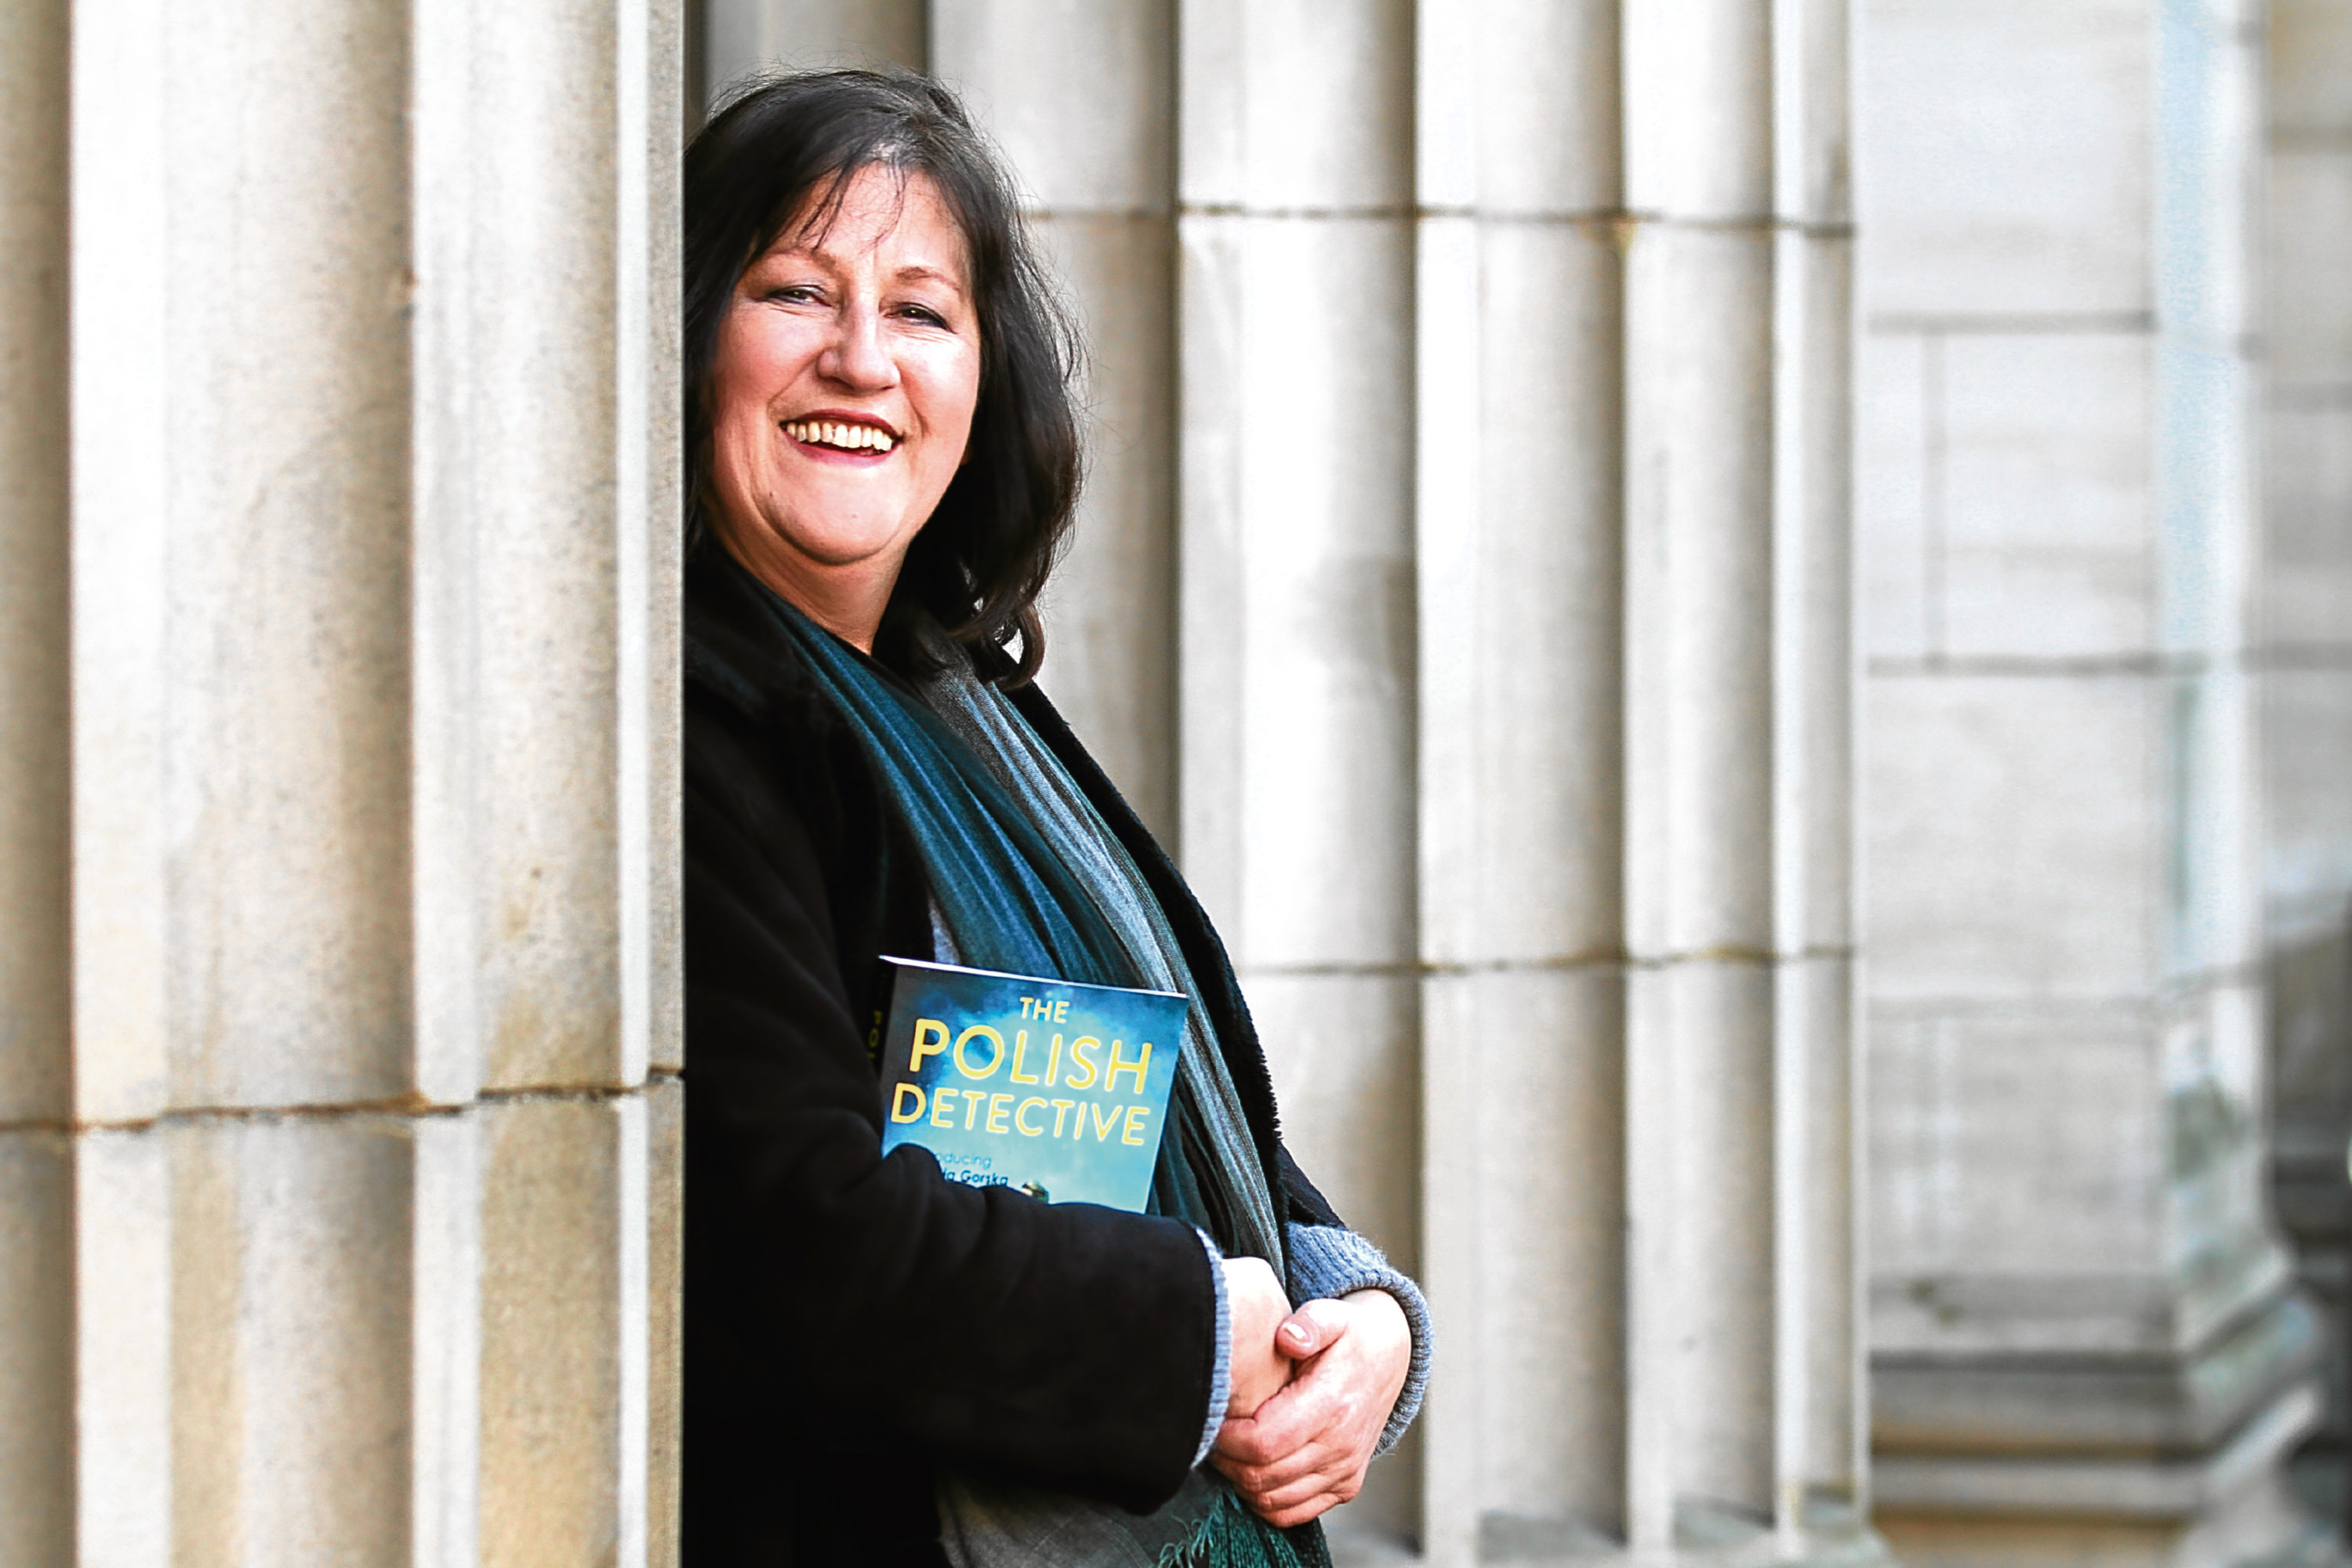 Hania Allen's new novel The Polish Detective is set in Dundee.